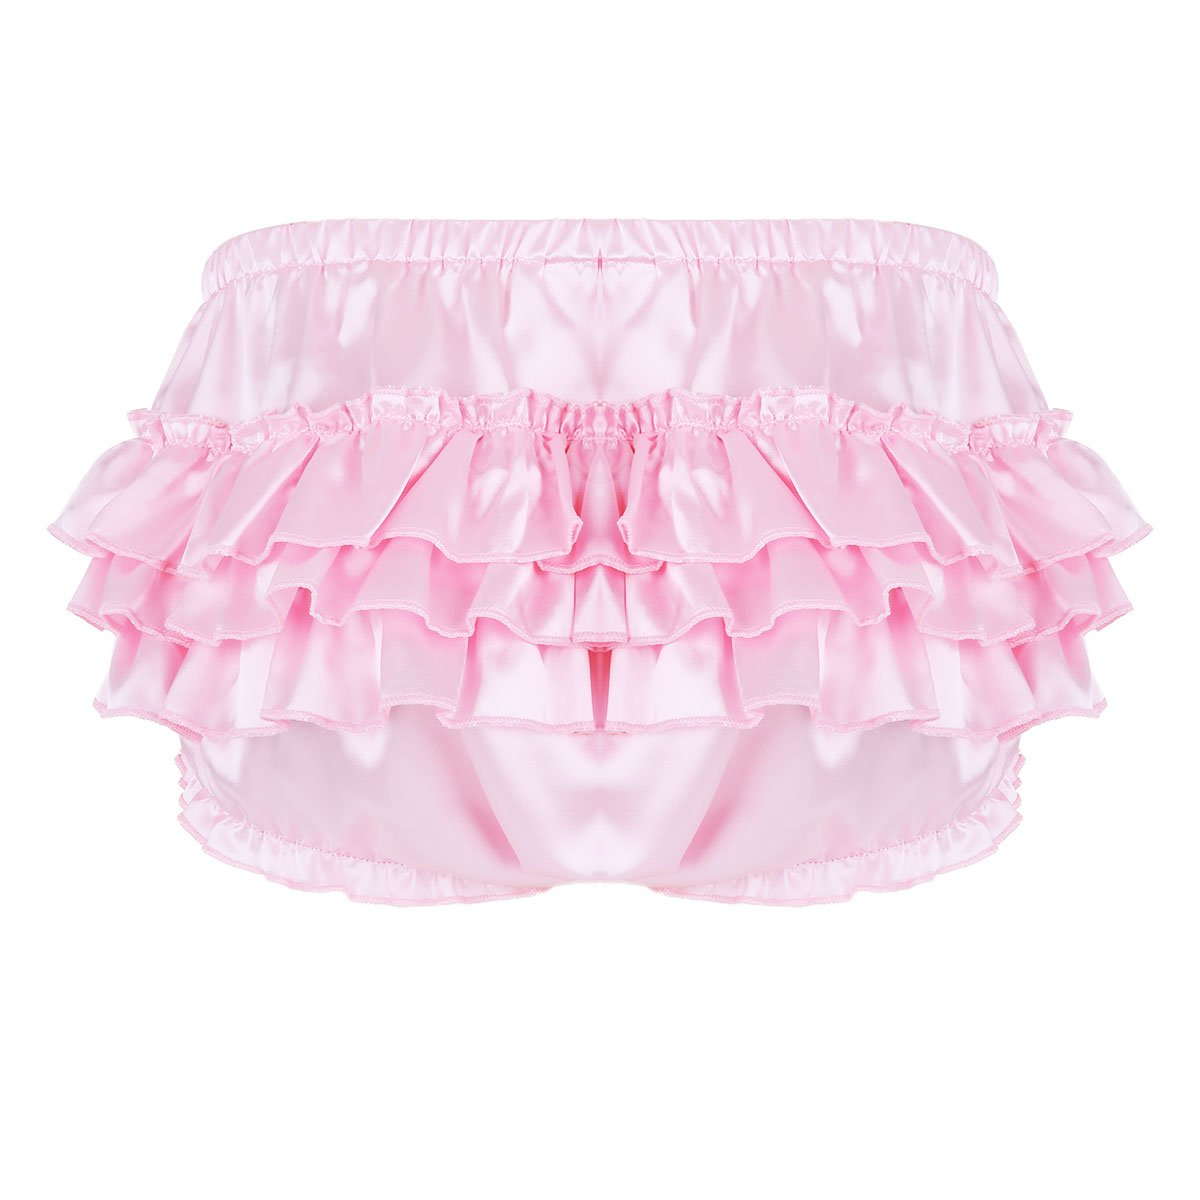 8b8dd4b77 Galleon - Alvivi Mens Sexy Satin Ruffled Bloomer Briefs Lingerie Sissy  Tiered Skirted Underwear Panties Pink X-Large (Waistline 34.0